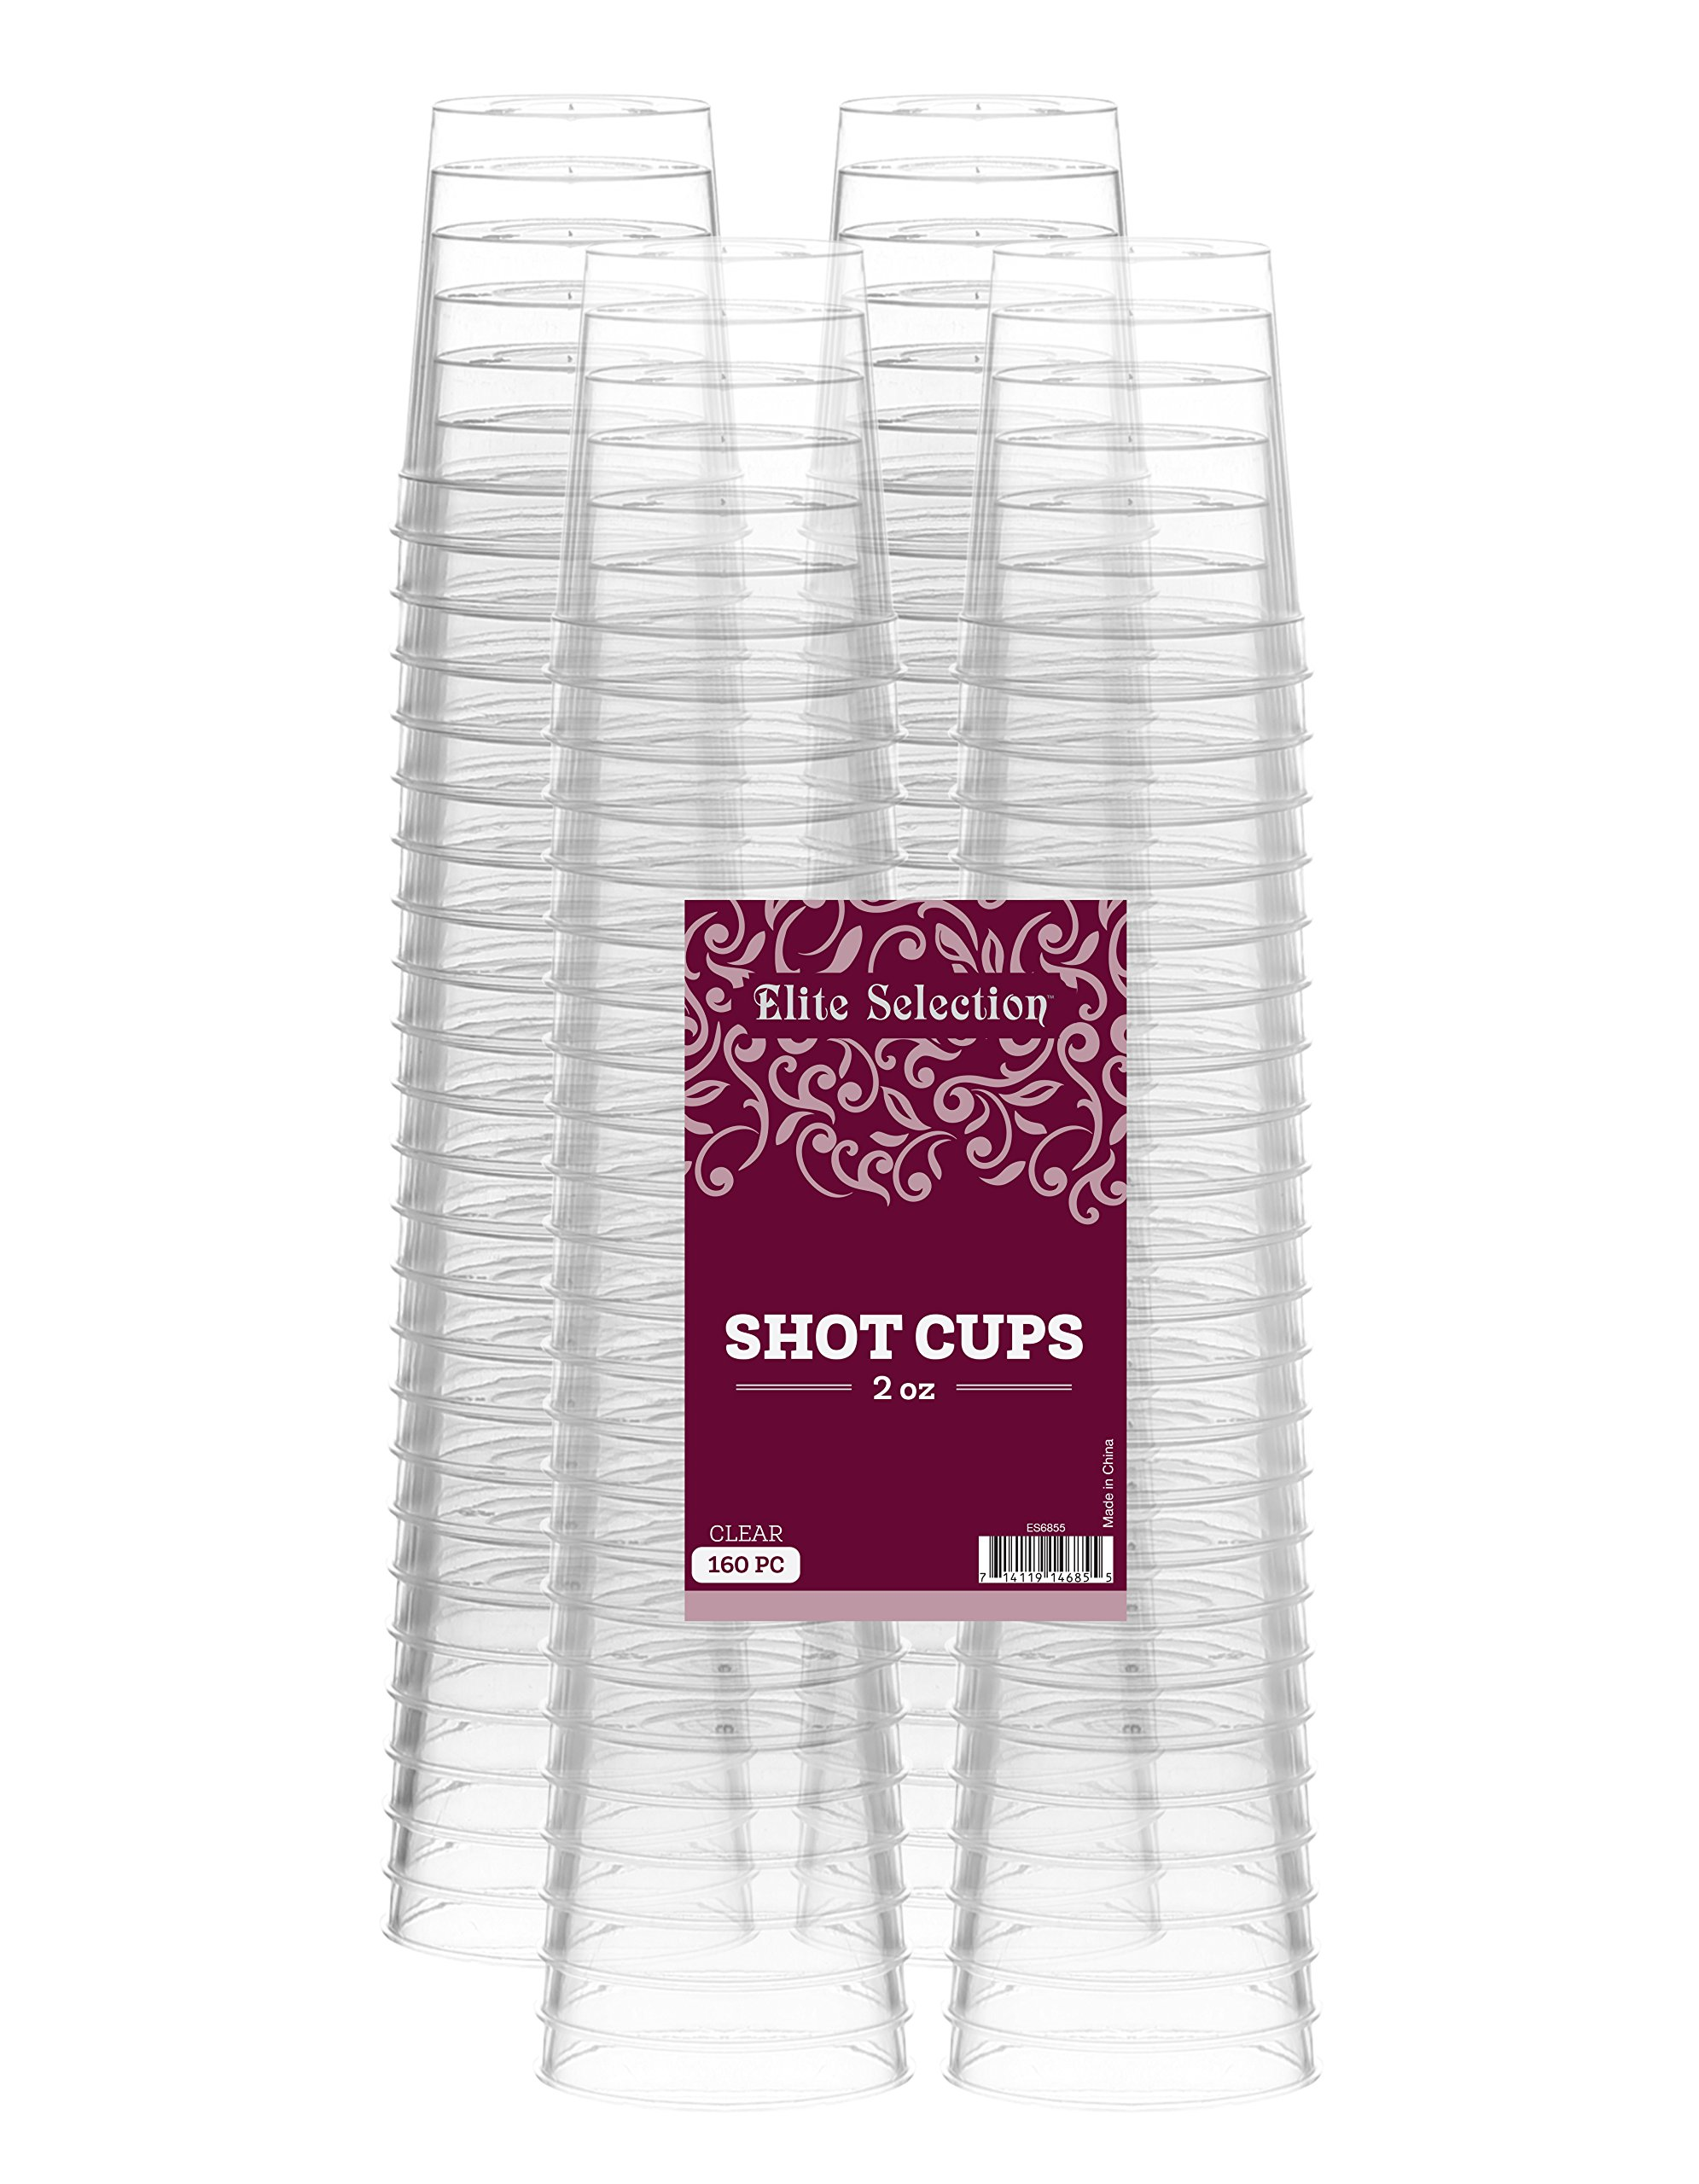 Elite Selection Shot Glasses 2 Oz. Clear Hard Plastic Cups Disposable | Pack of (160) Nice Party Shot Cups - Tasting Cups-Party Accessories